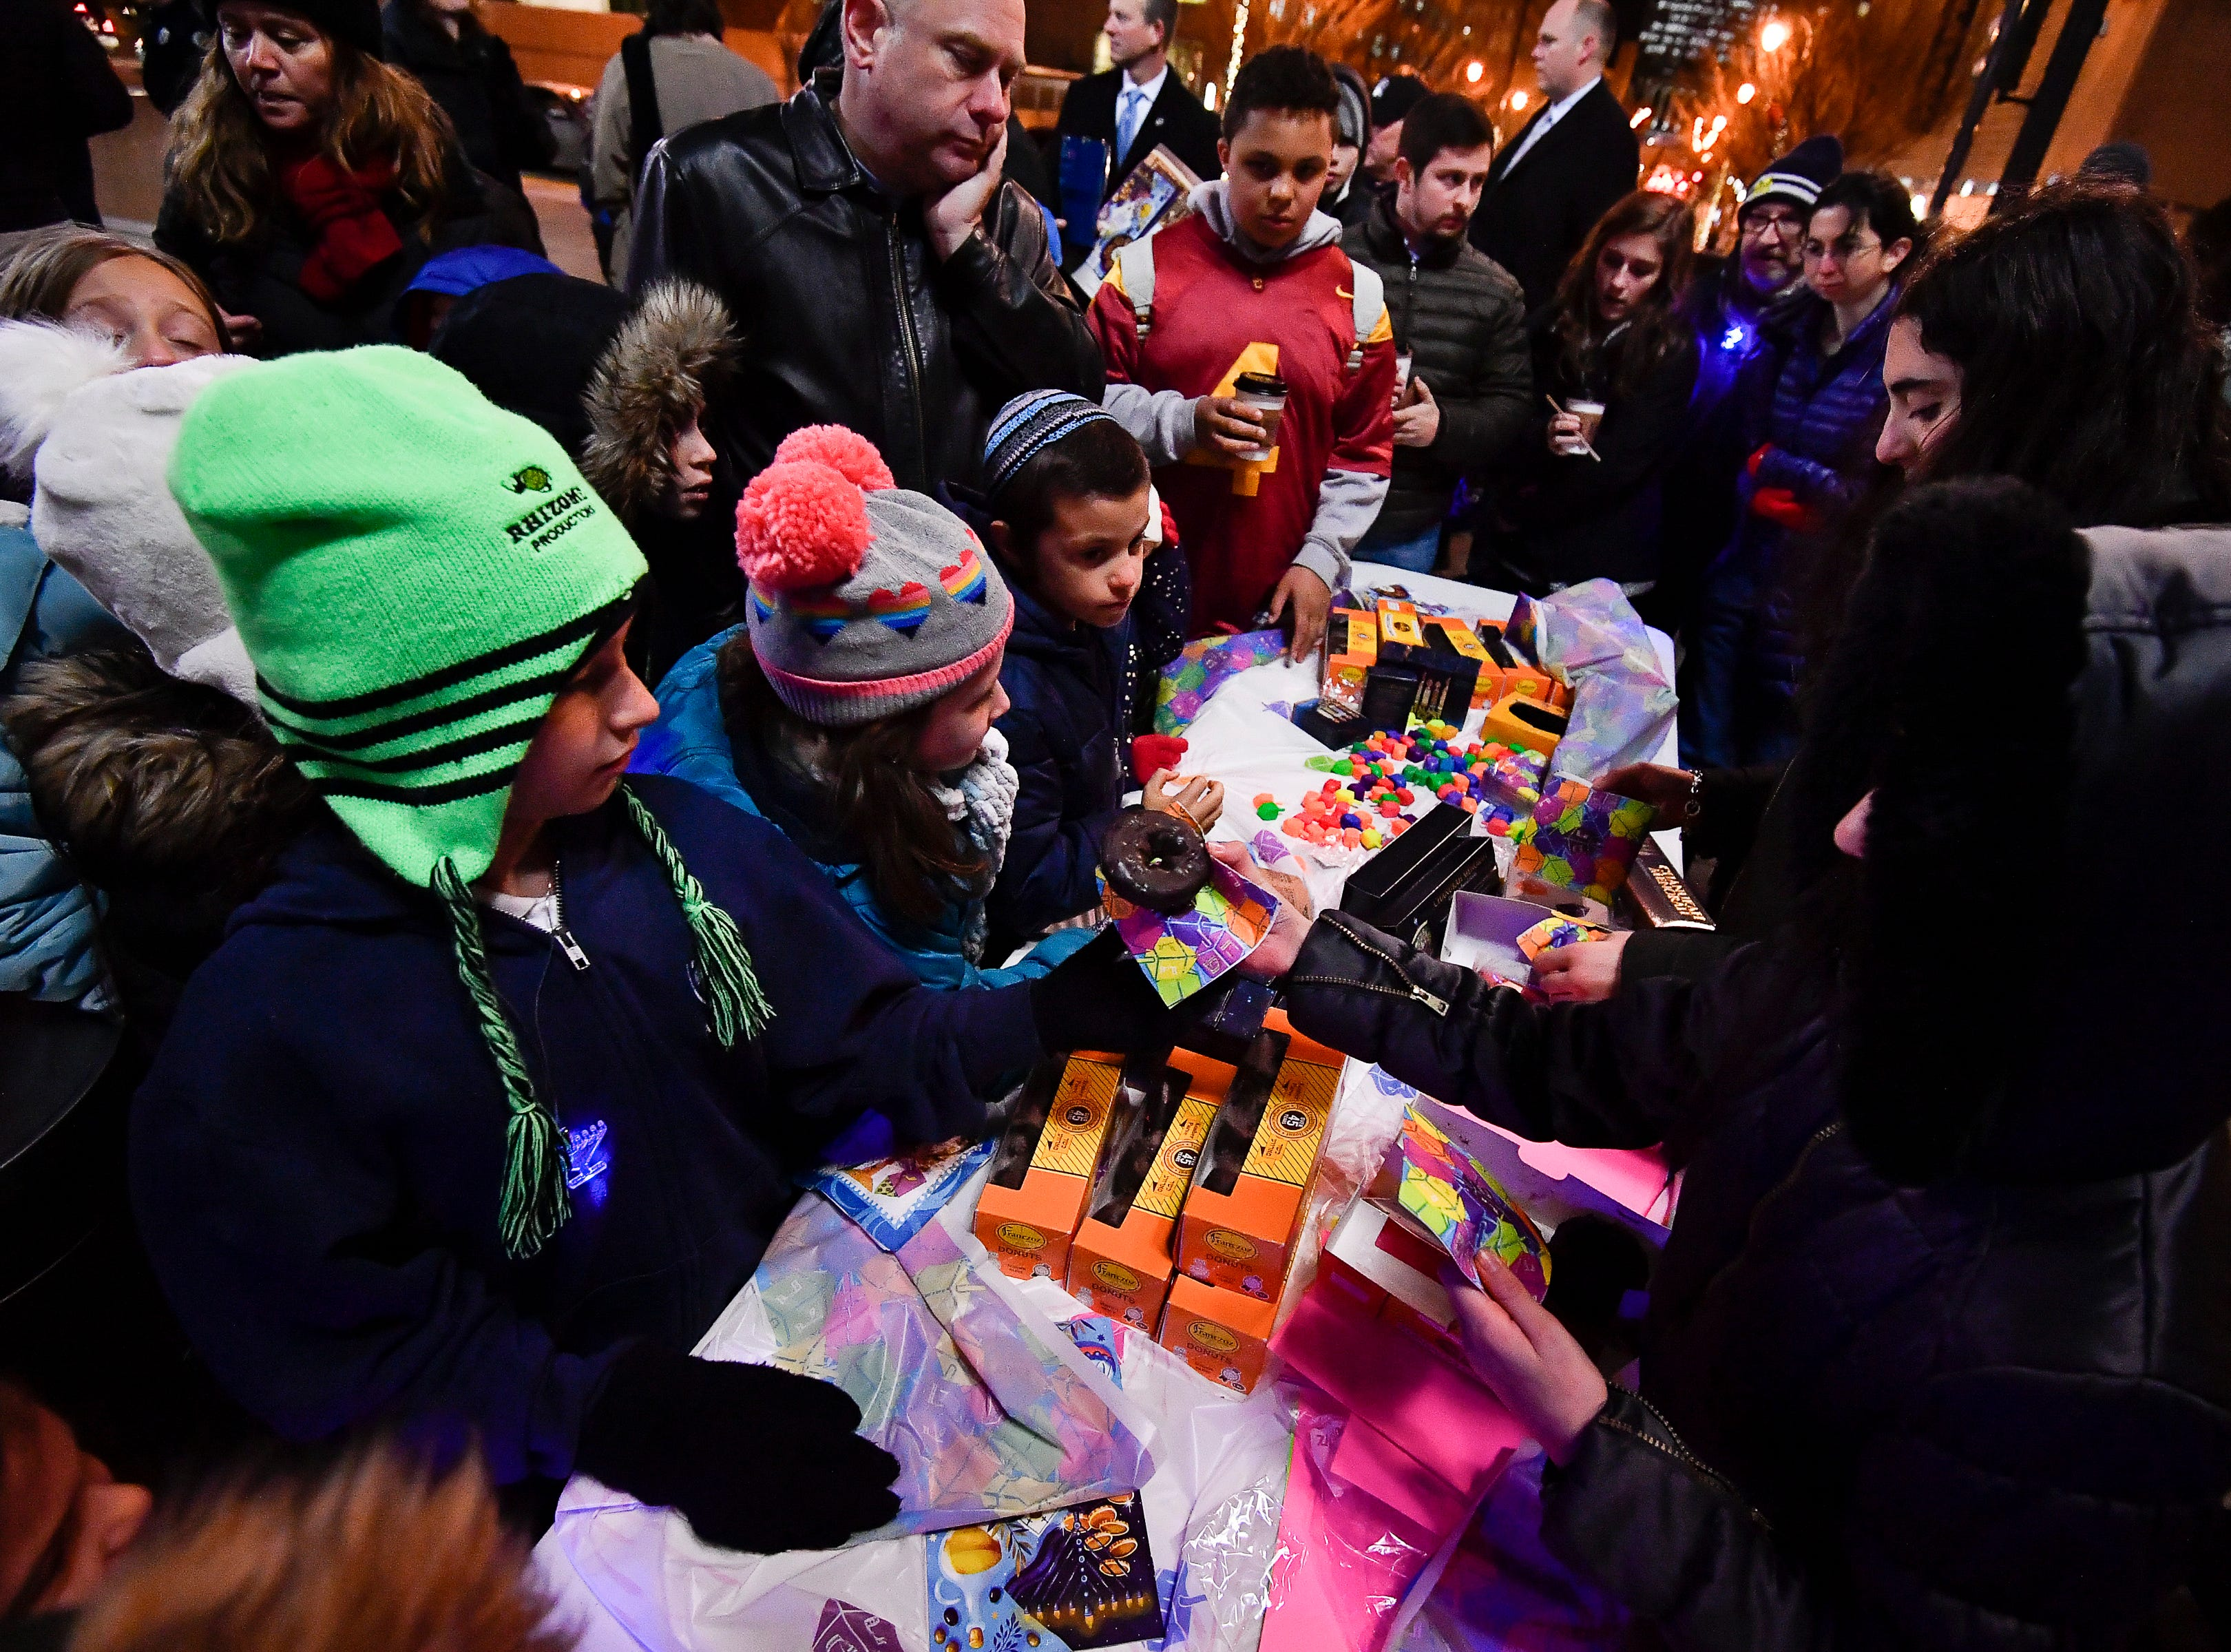 Children enjoy special Chanuka Gelt and Donuts during a Chanukah menorah lighting ceremony at Public Square Park Tuesday, Dec. 4, 2018, in Nashville, Tenn.